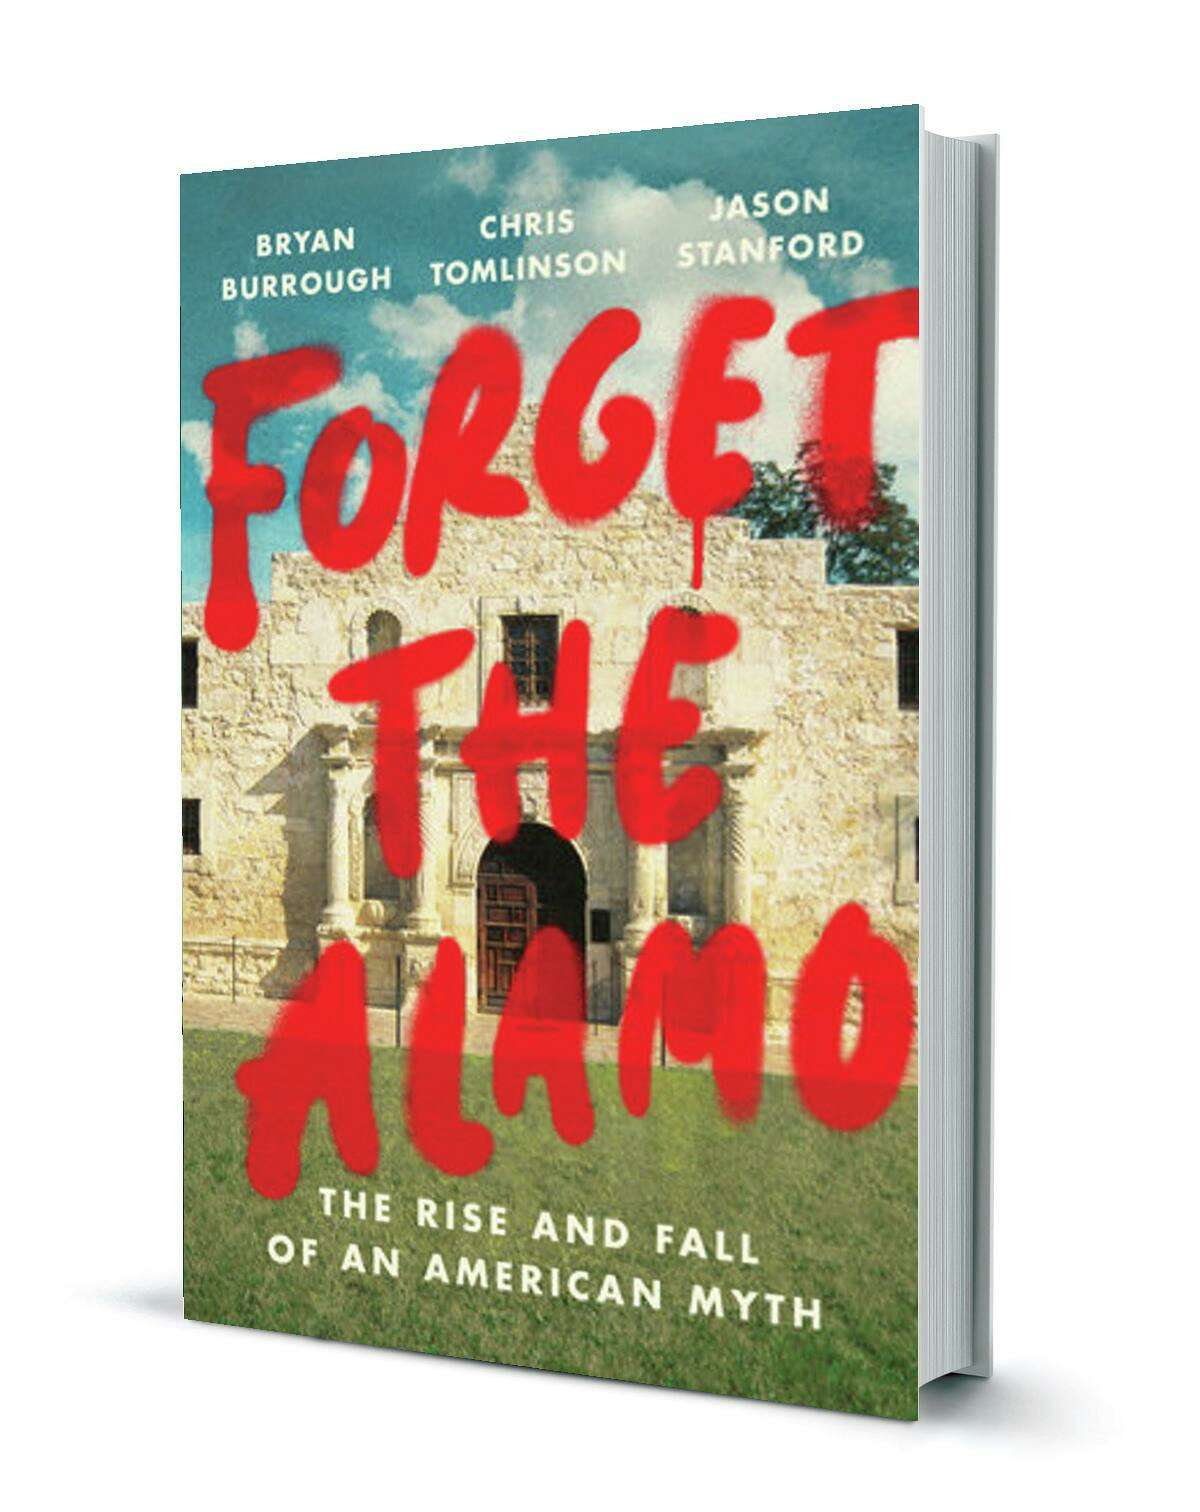 Forget the Alamo: The Rise and Fall of an American Myth Hardcover - June 8, 2021, by Bryan Burrough, Chris Tomlinson, Jason Stanford has stirred passions.